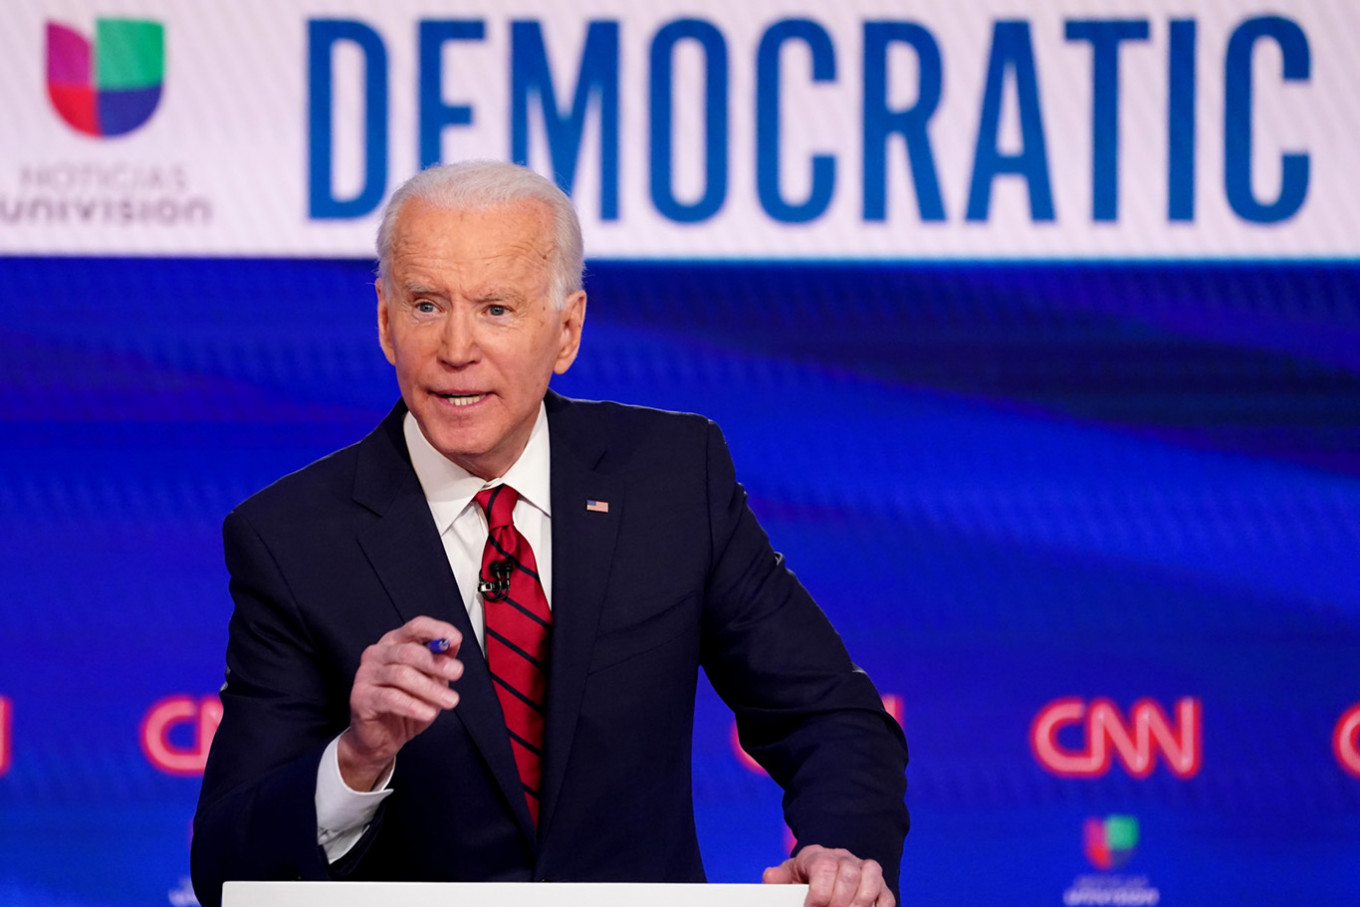 Biden's first campaign fundraiser with Obama set to raise $4 million